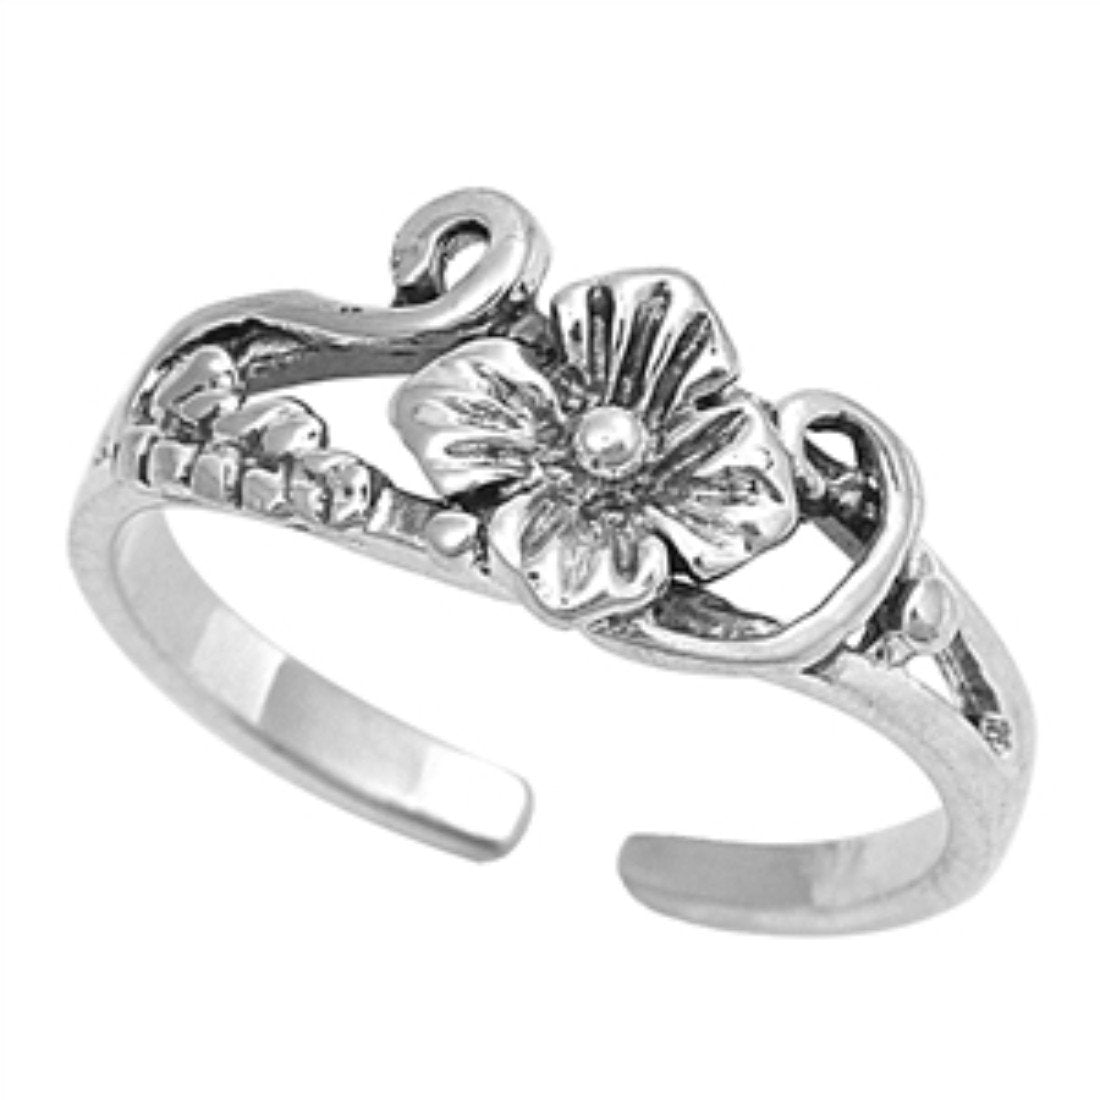 Flower Toe Ring Adjustable Band 925 Sterling Silver For Women (6mm)